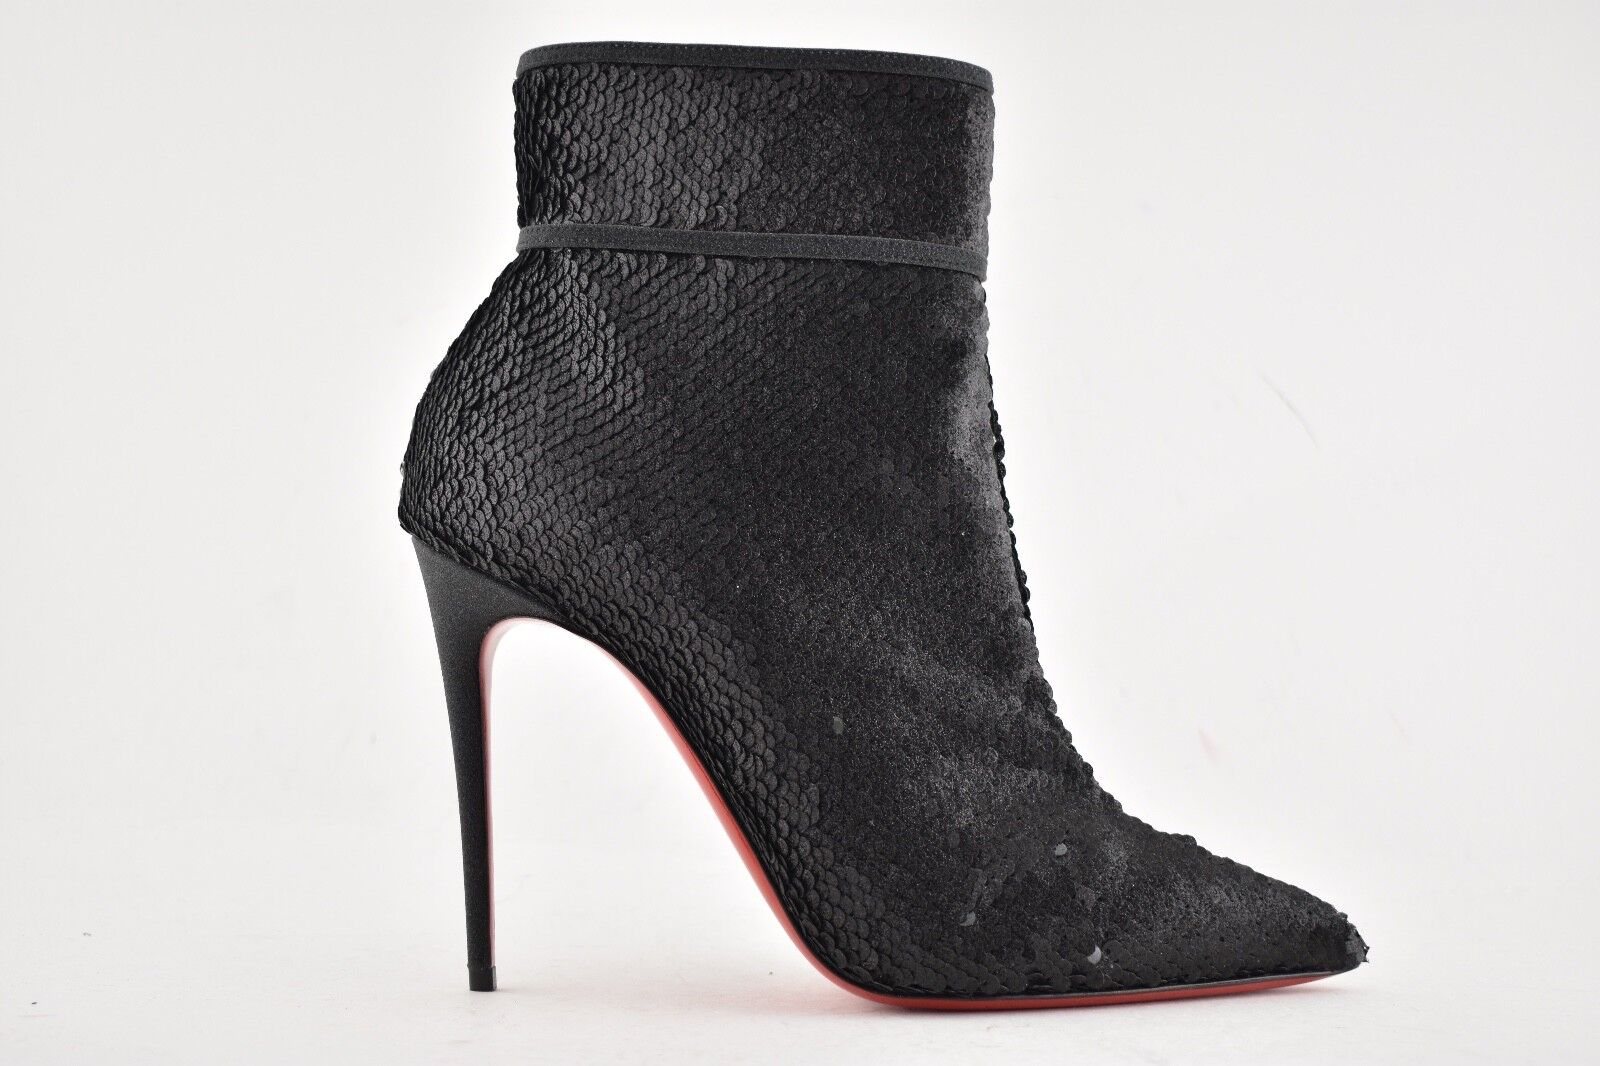 69c97d7b747e Christian Louboutin Moulakate 100 Sequin Bootie 39 Black for sale ...